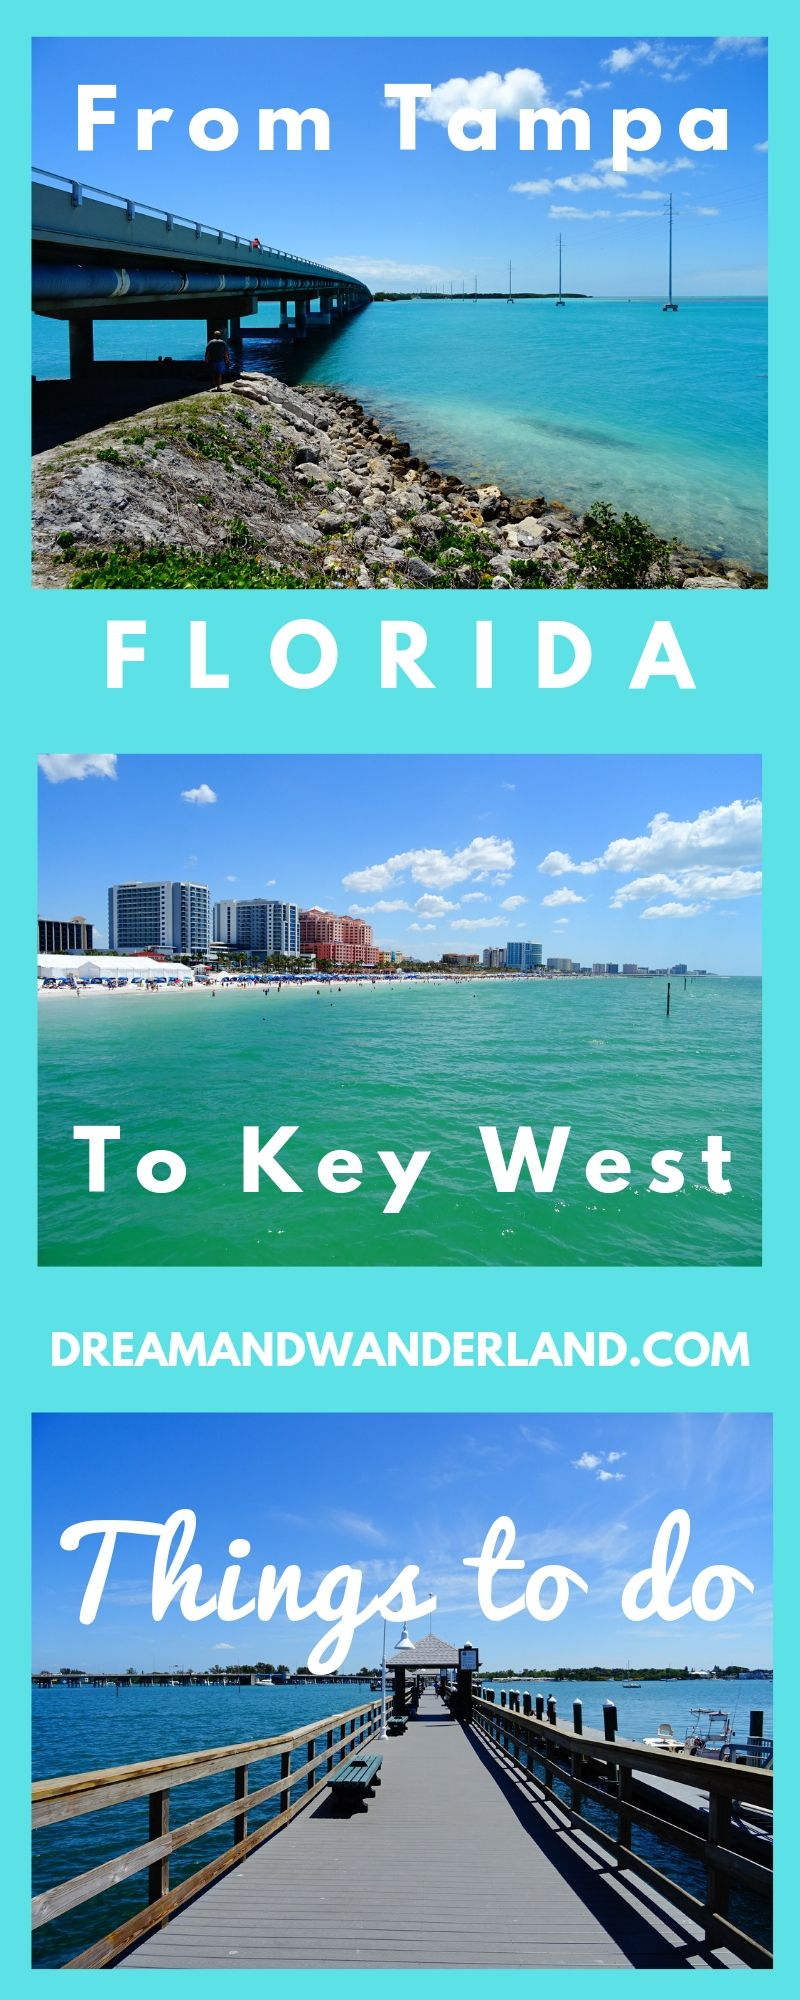 Tampa To Key West By Car Place You Have To Visit